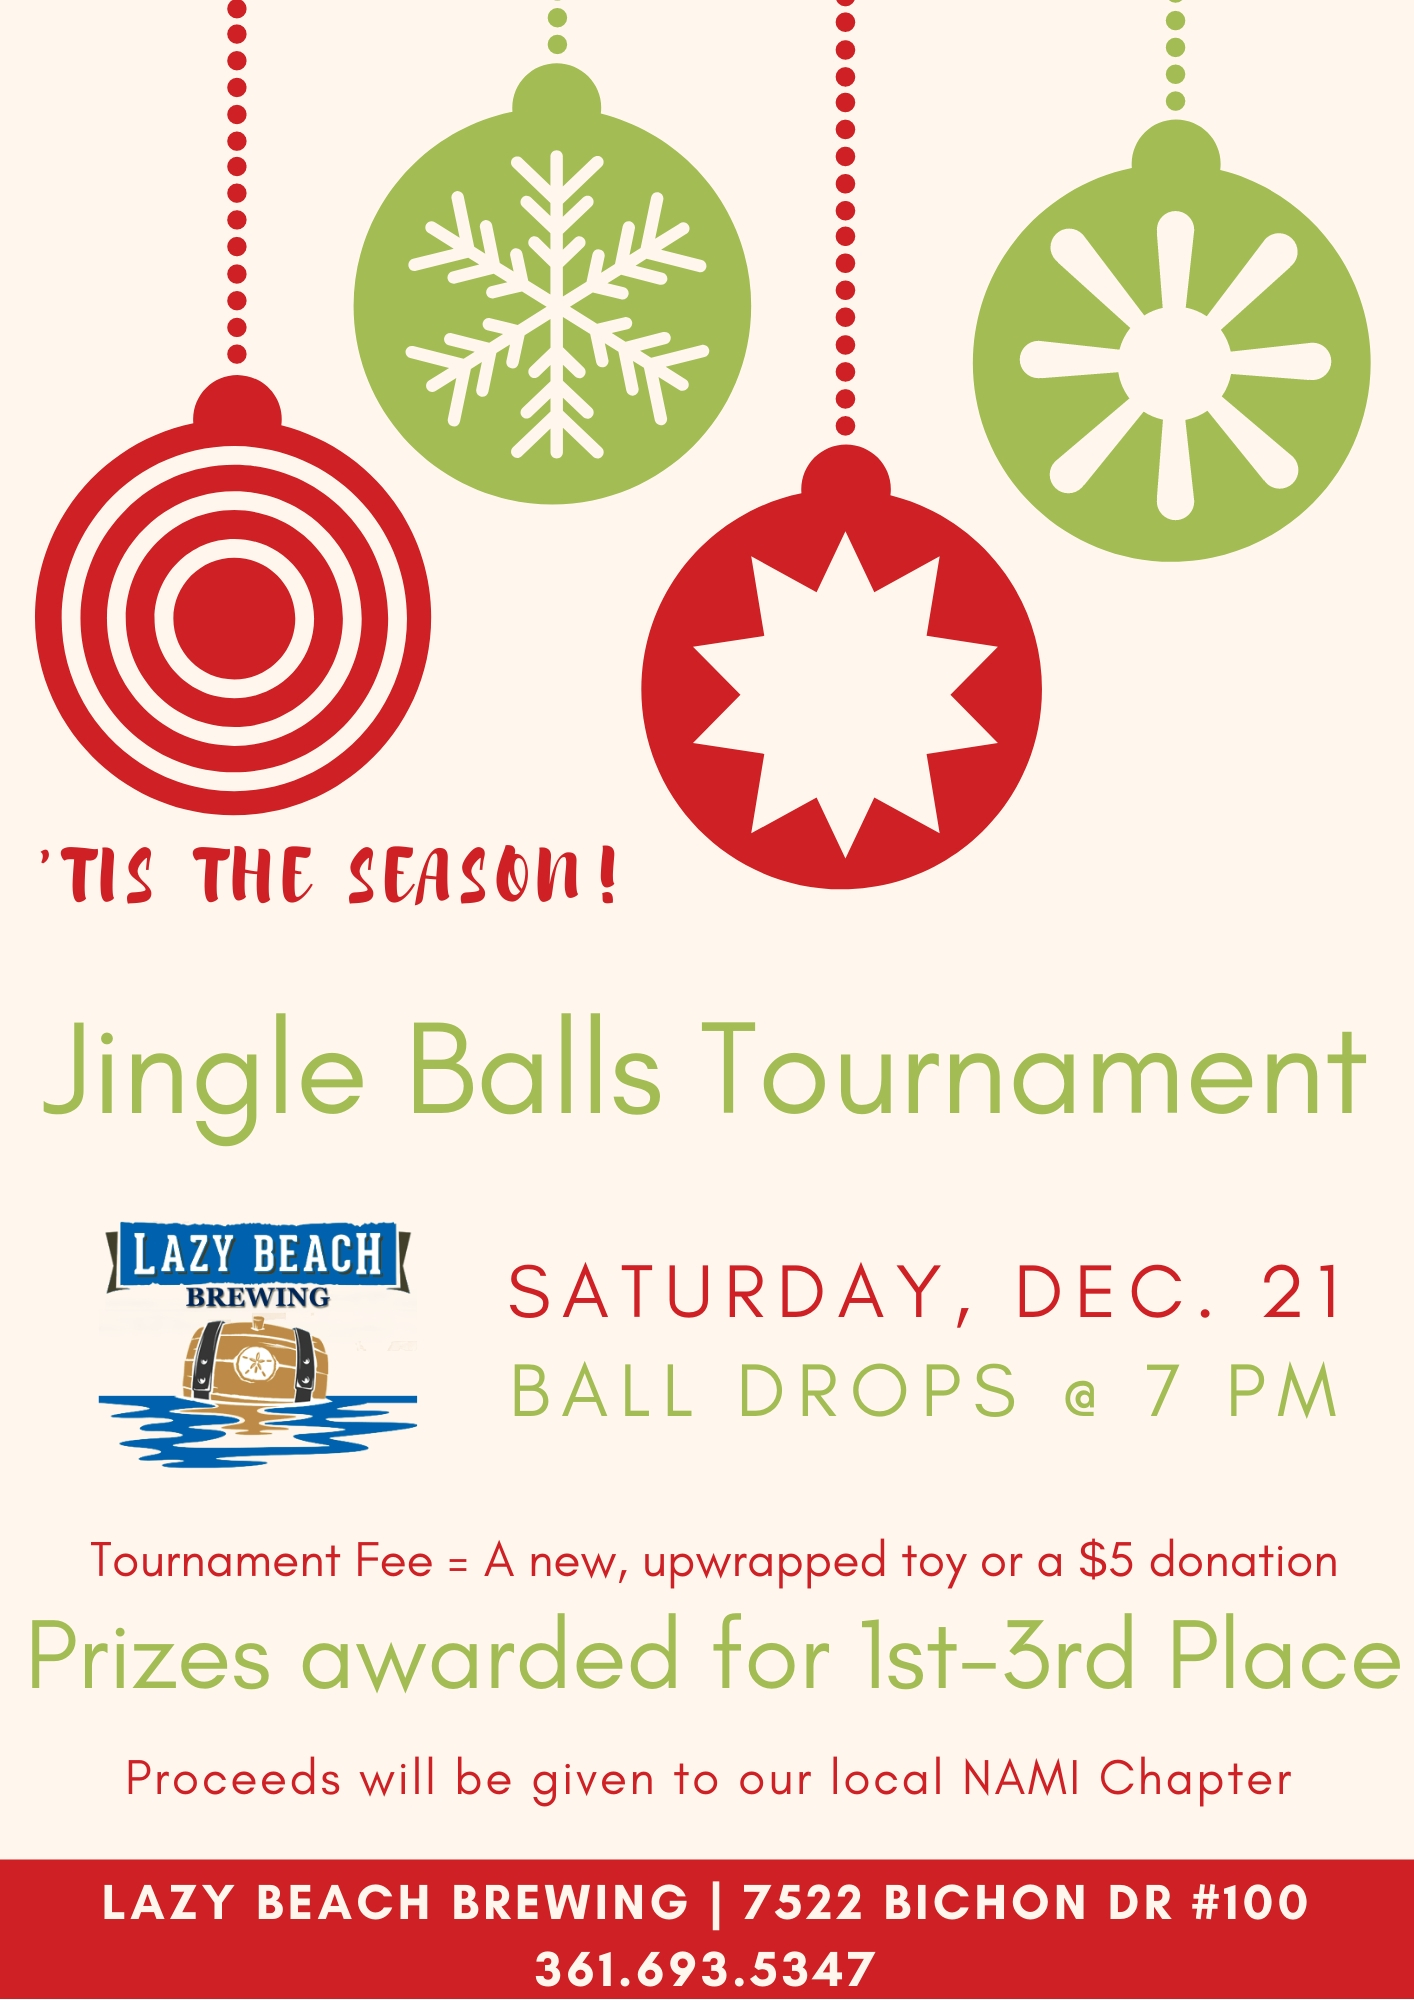 Jingle Balls Tournament tonight at 7!